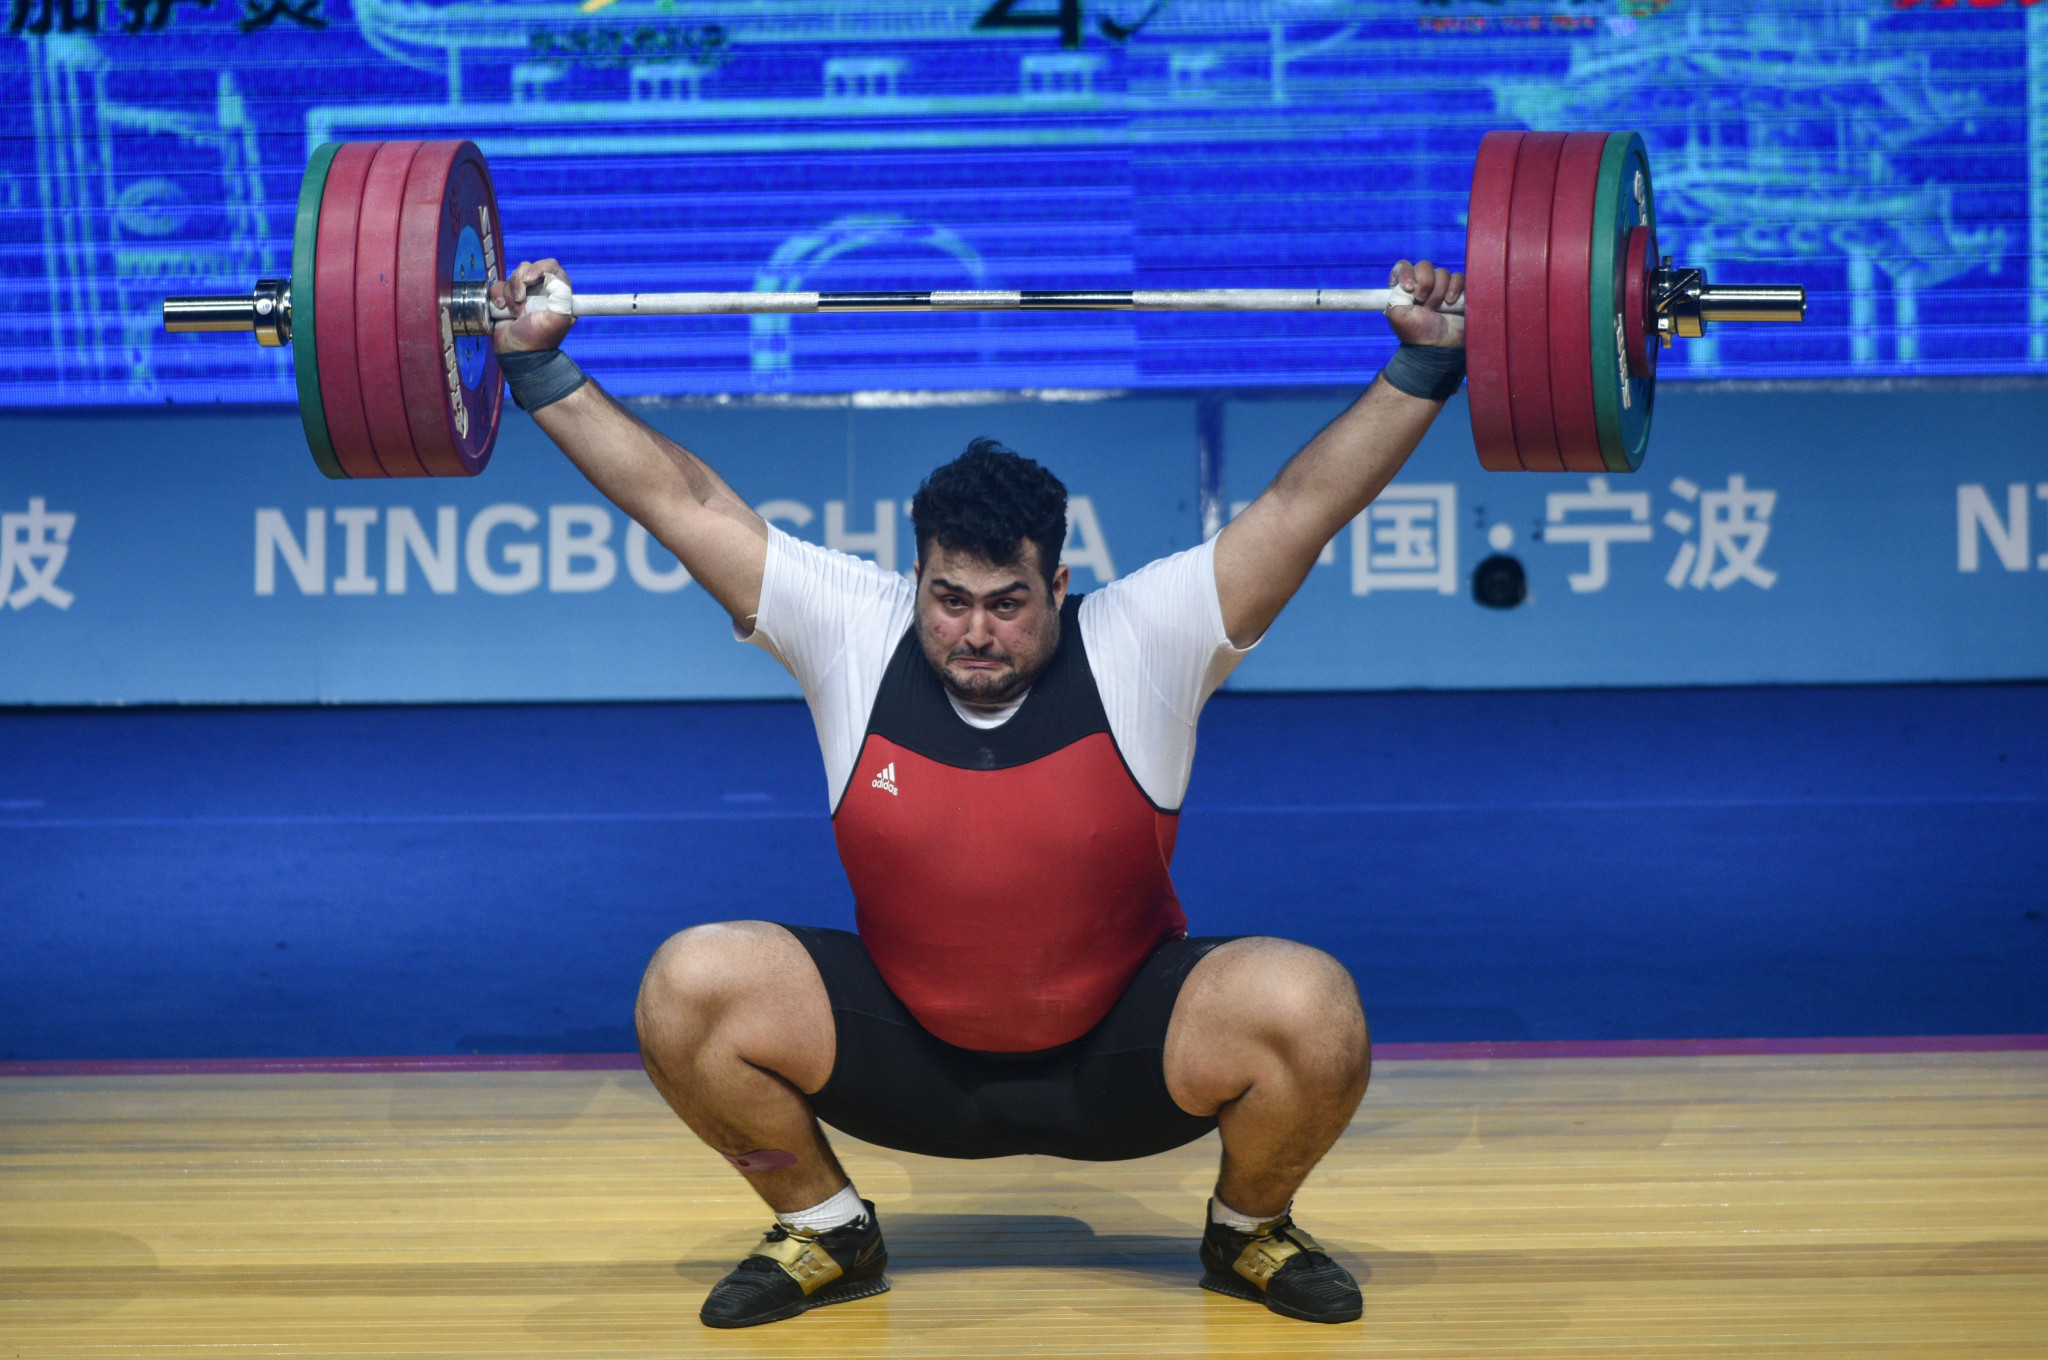 Youngster's huge total and Moradi's return boost Iran's Tokyo 2020 weightlifting hopes